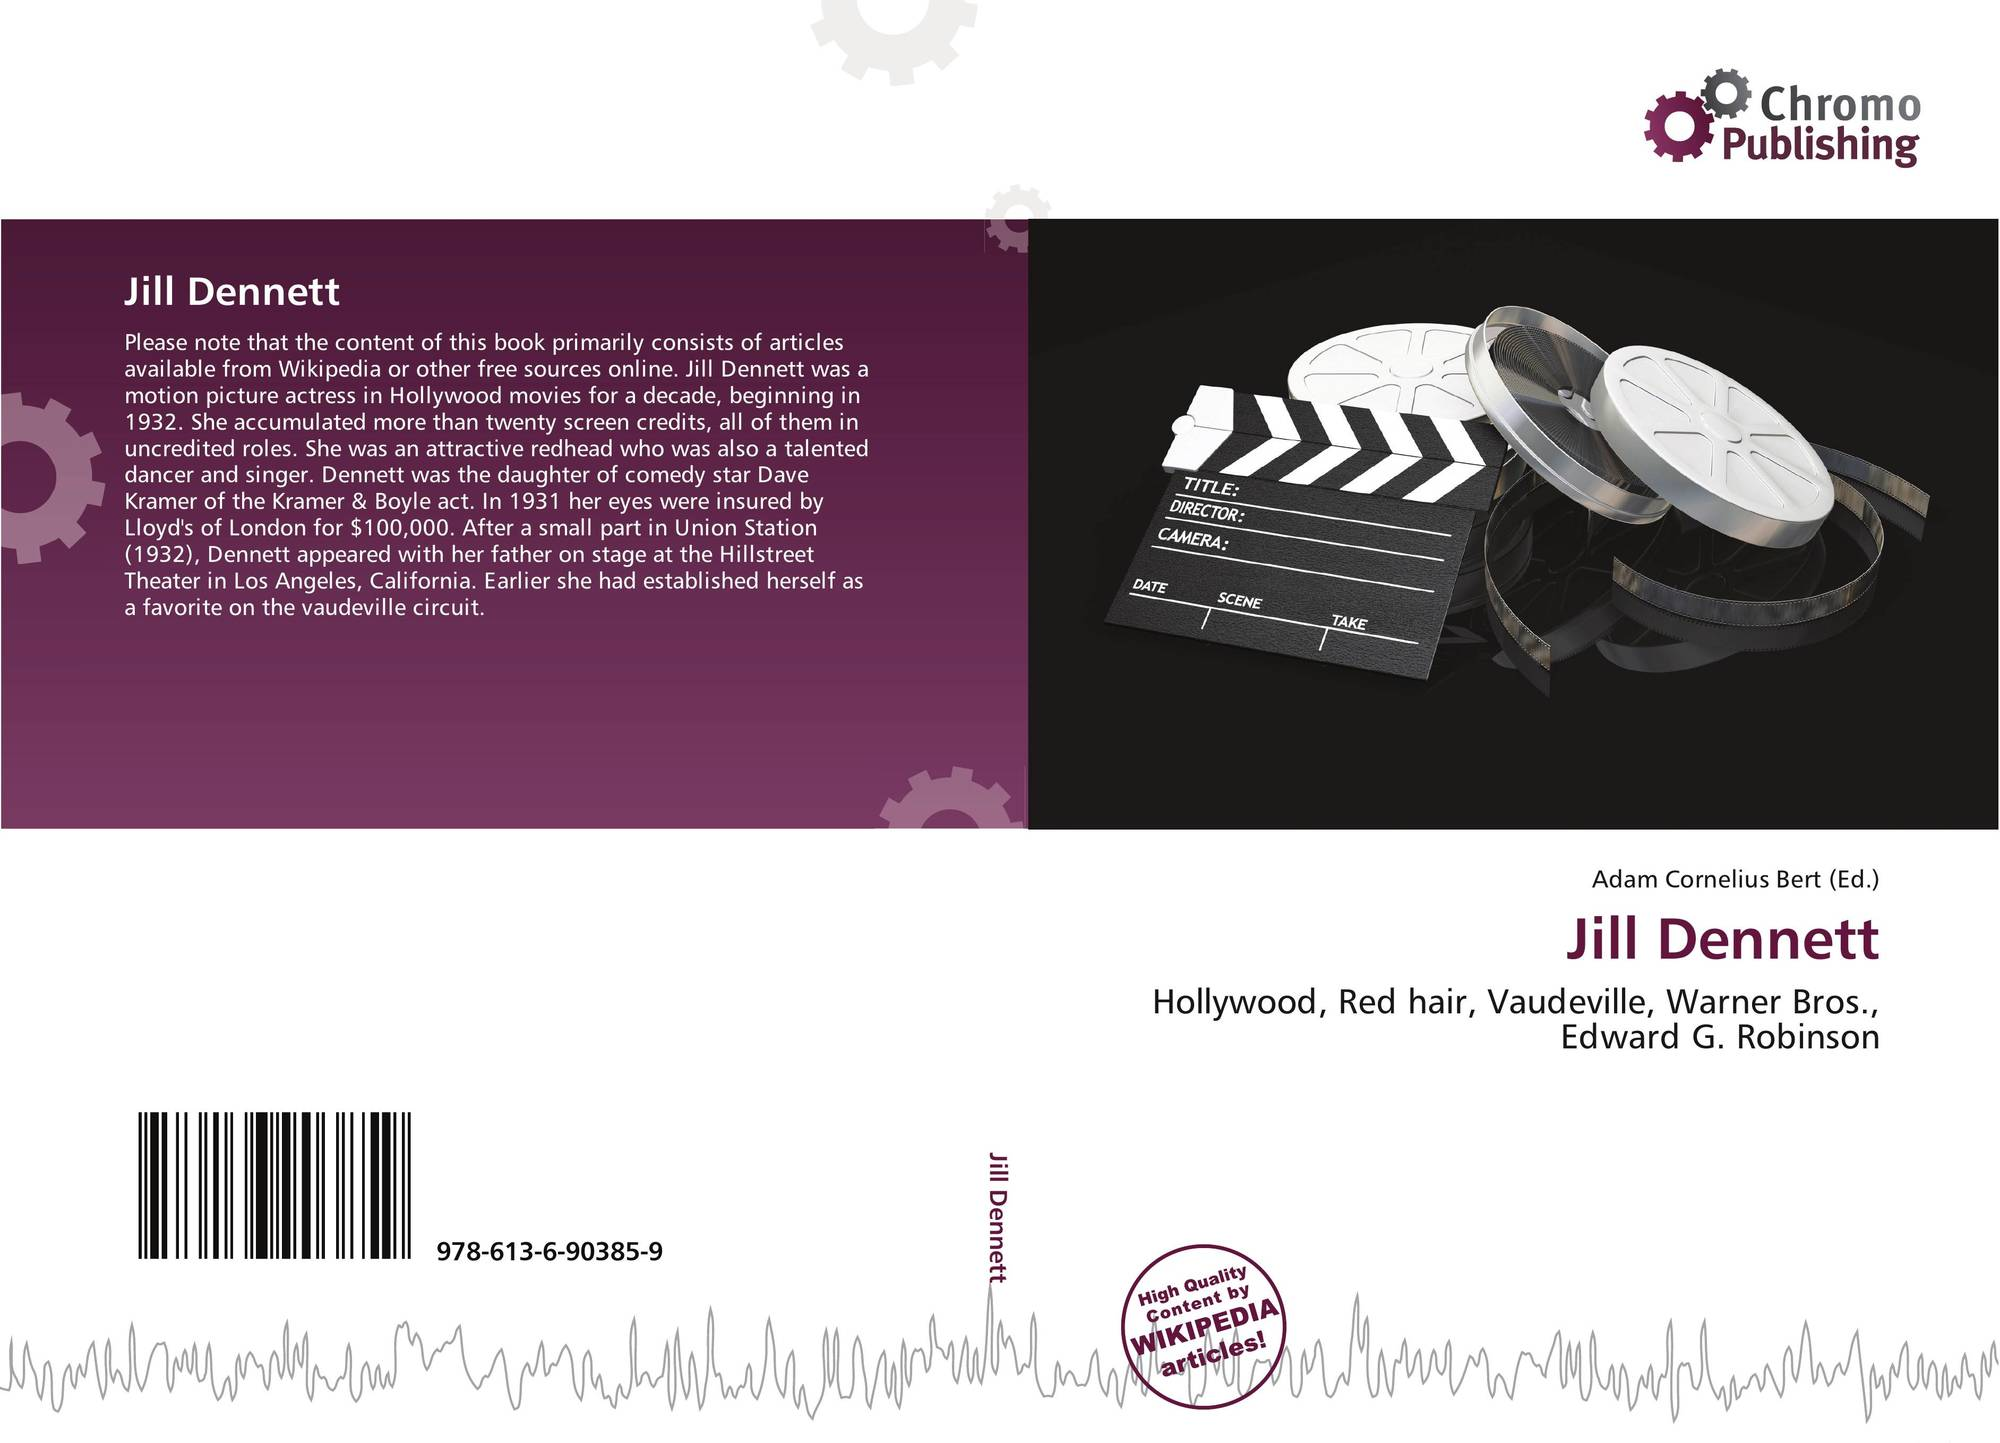 Communication on this topic: Victoria Duffield, jill-dennett/